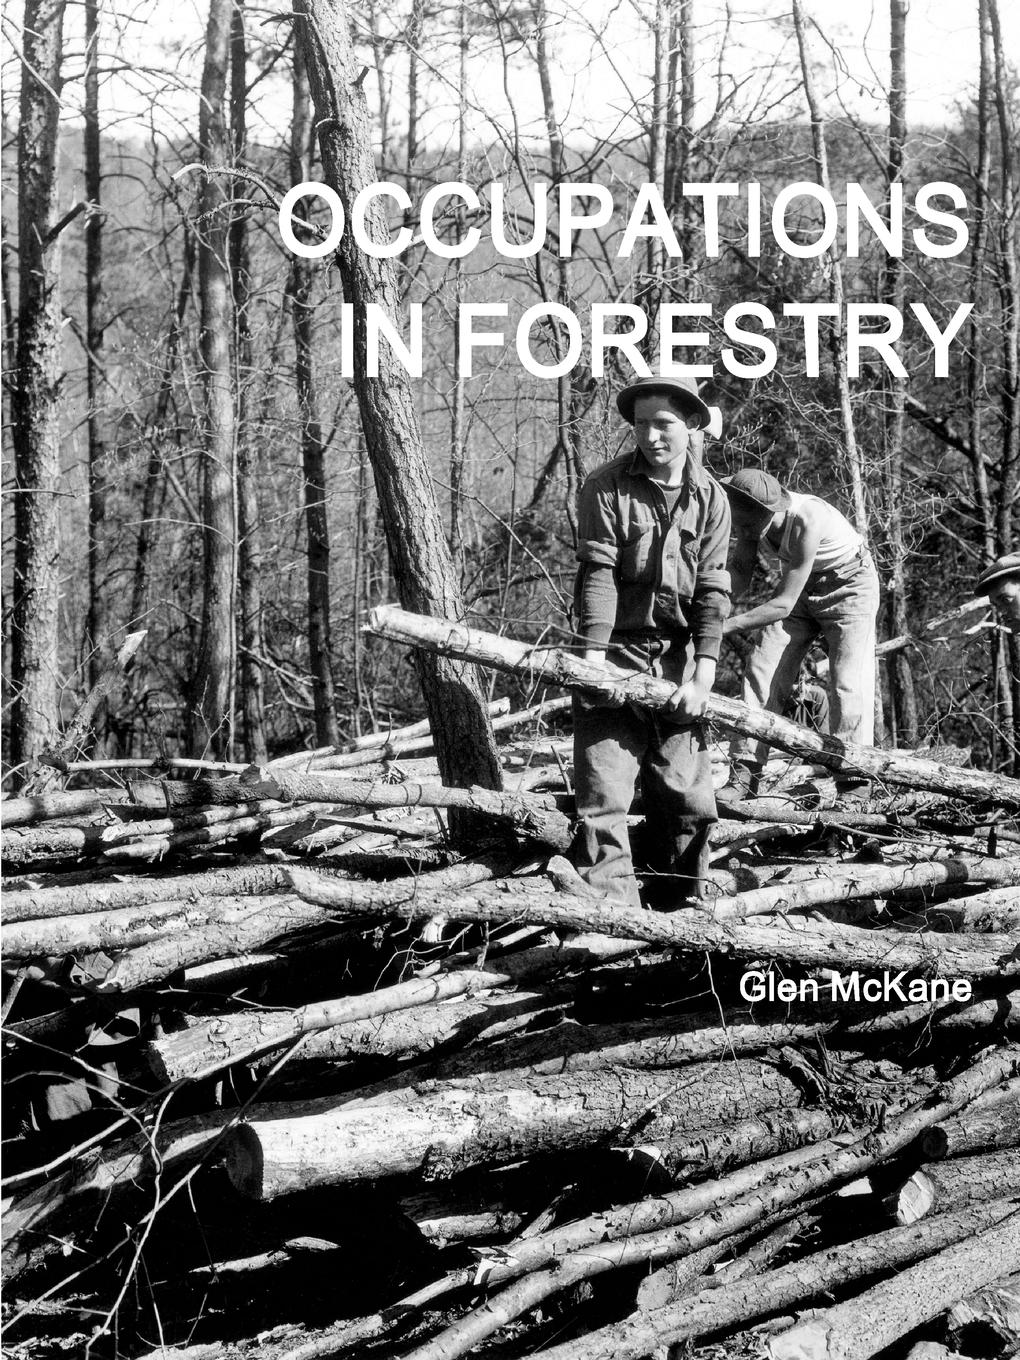 Glen McKane Occupations in Forestry promoting engagement in leisure occupations